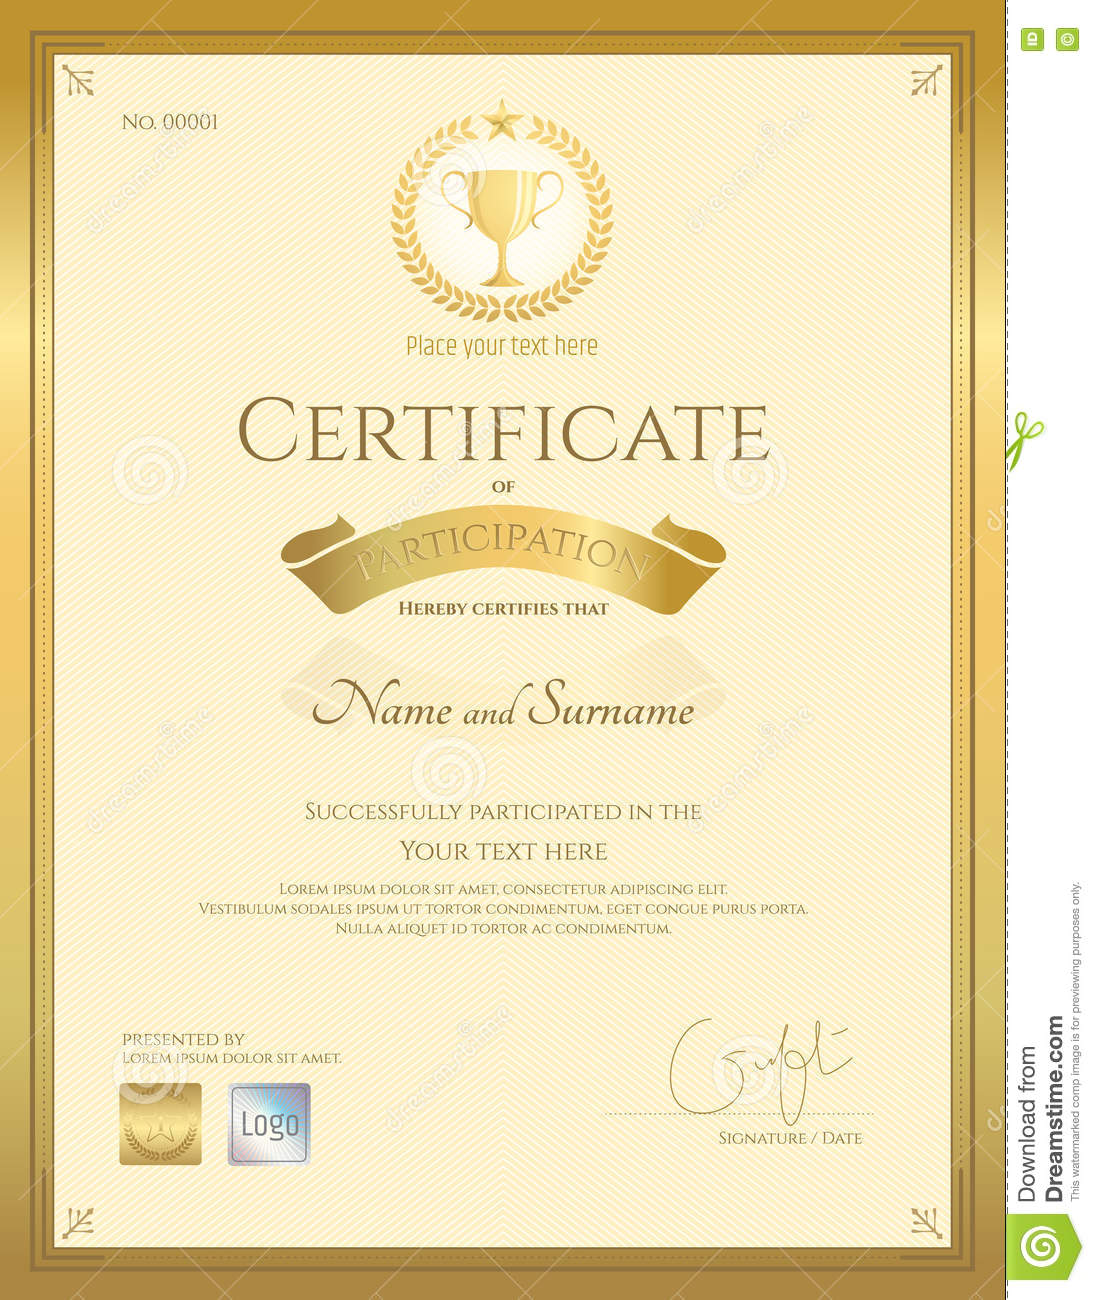 Certificate Of Participation Template In Gold Color Stock Vector